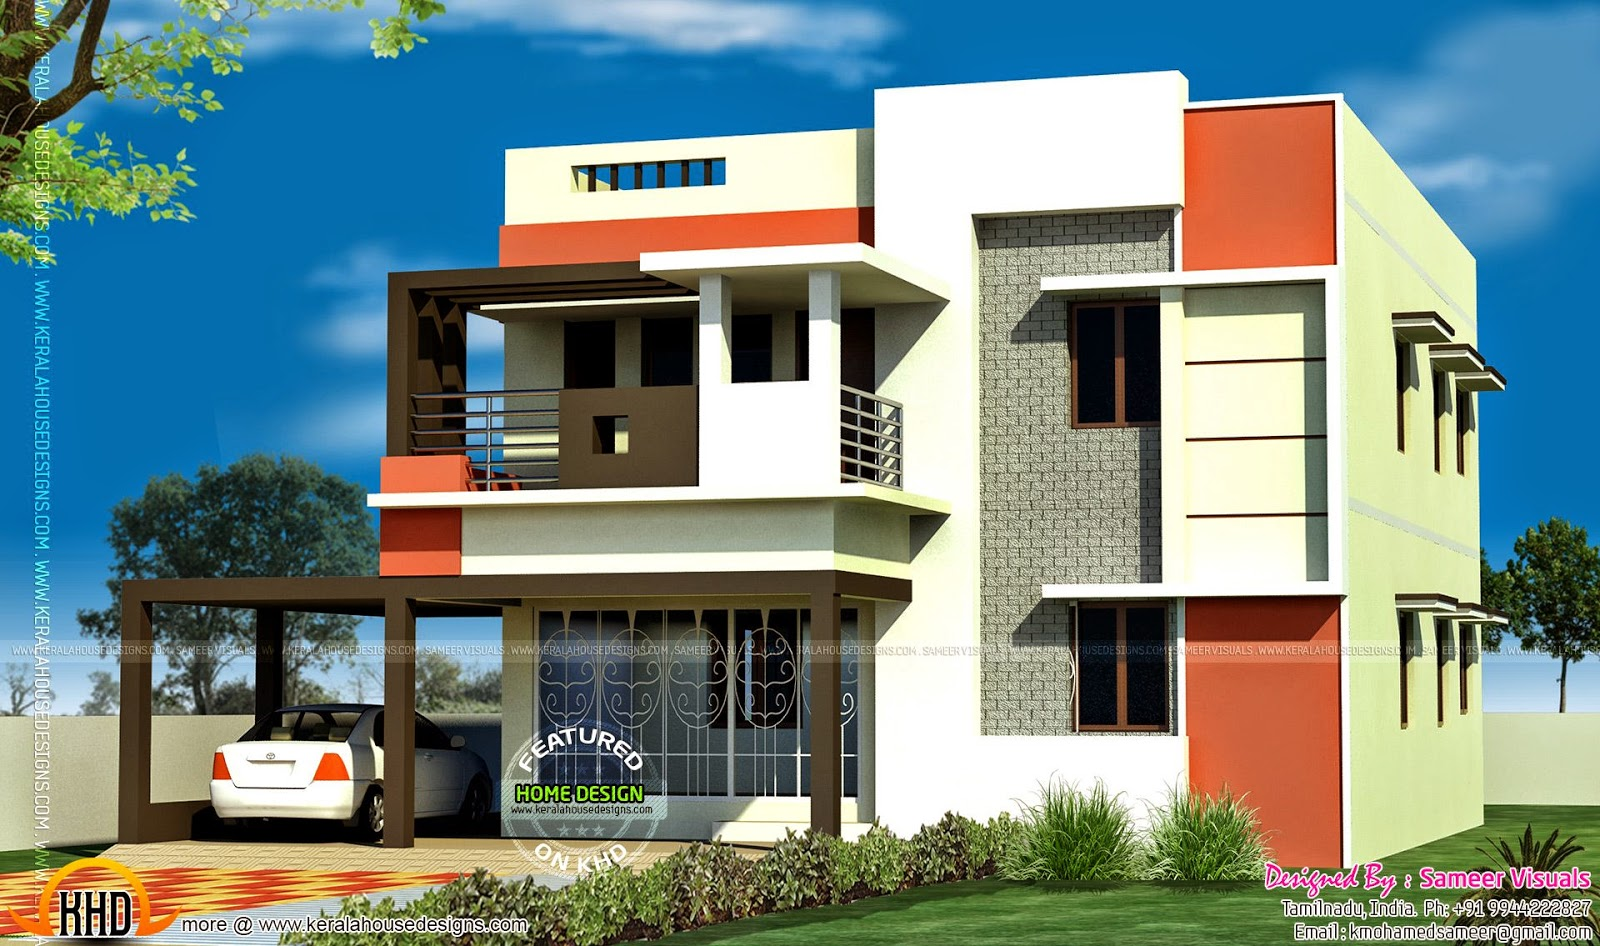 Nadu Building Plan Elevation Front View : November kerala home design and floor plans